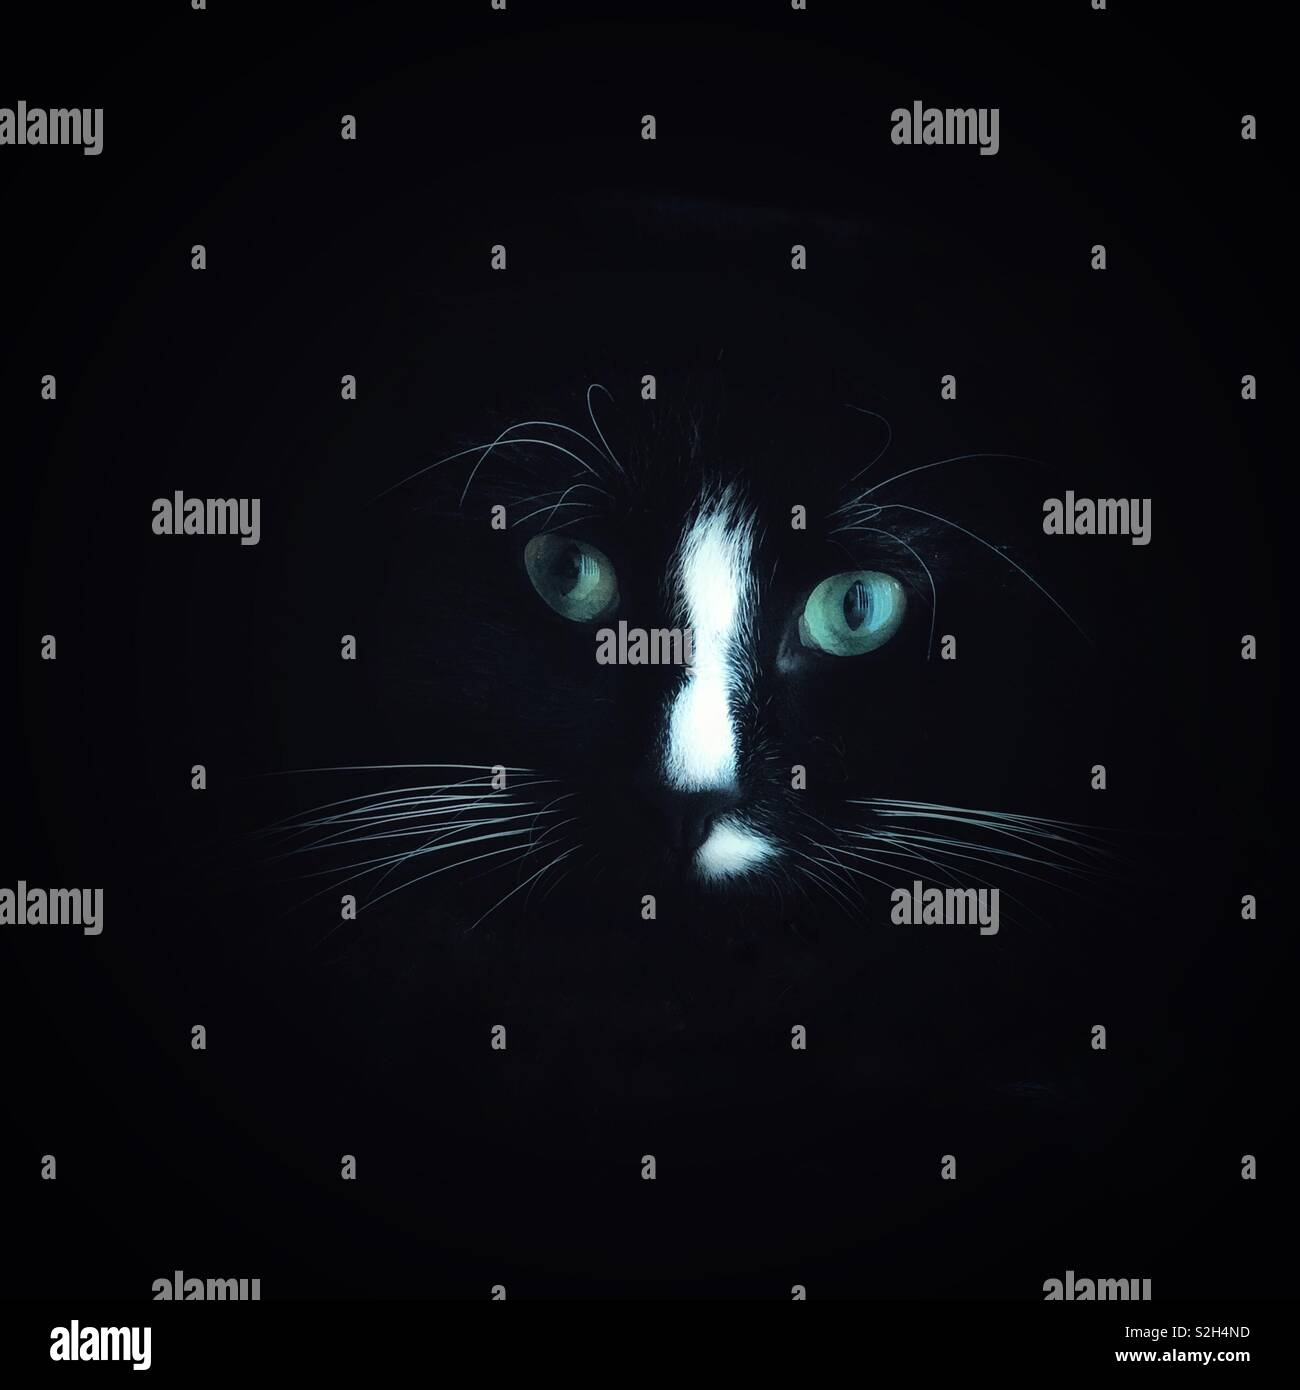 Black cat head portrait with white nose, white whiskers and green eyes in the darkness - Stock Image